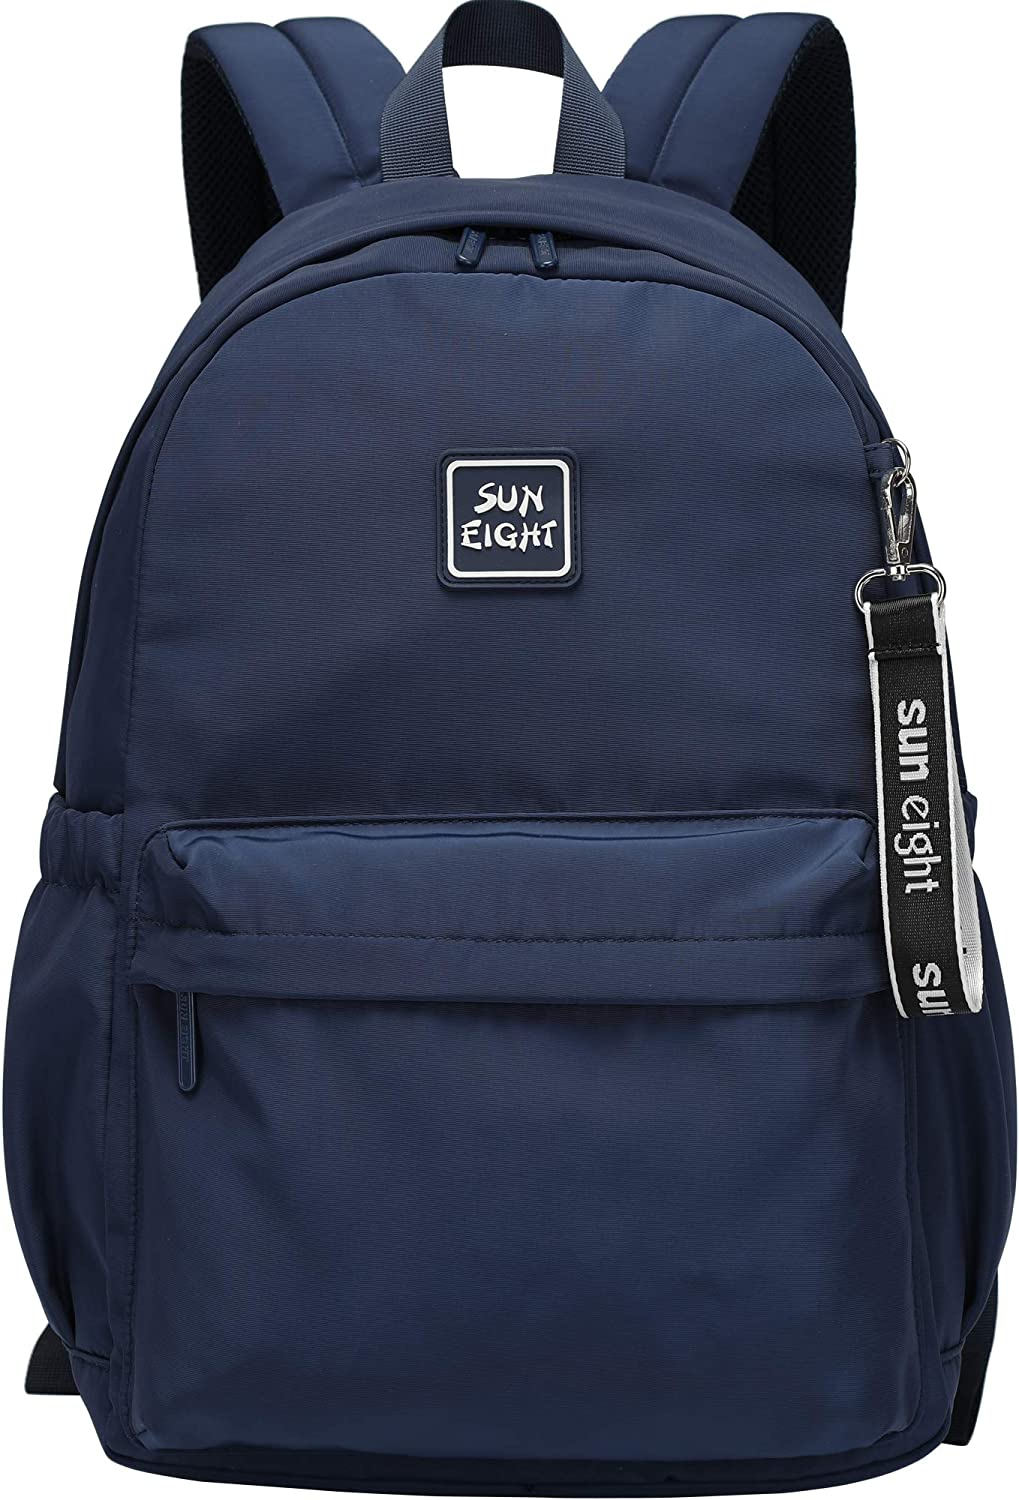 Kids Fashionable Backpack Sale Girls and Boys Classic School Light Weigh